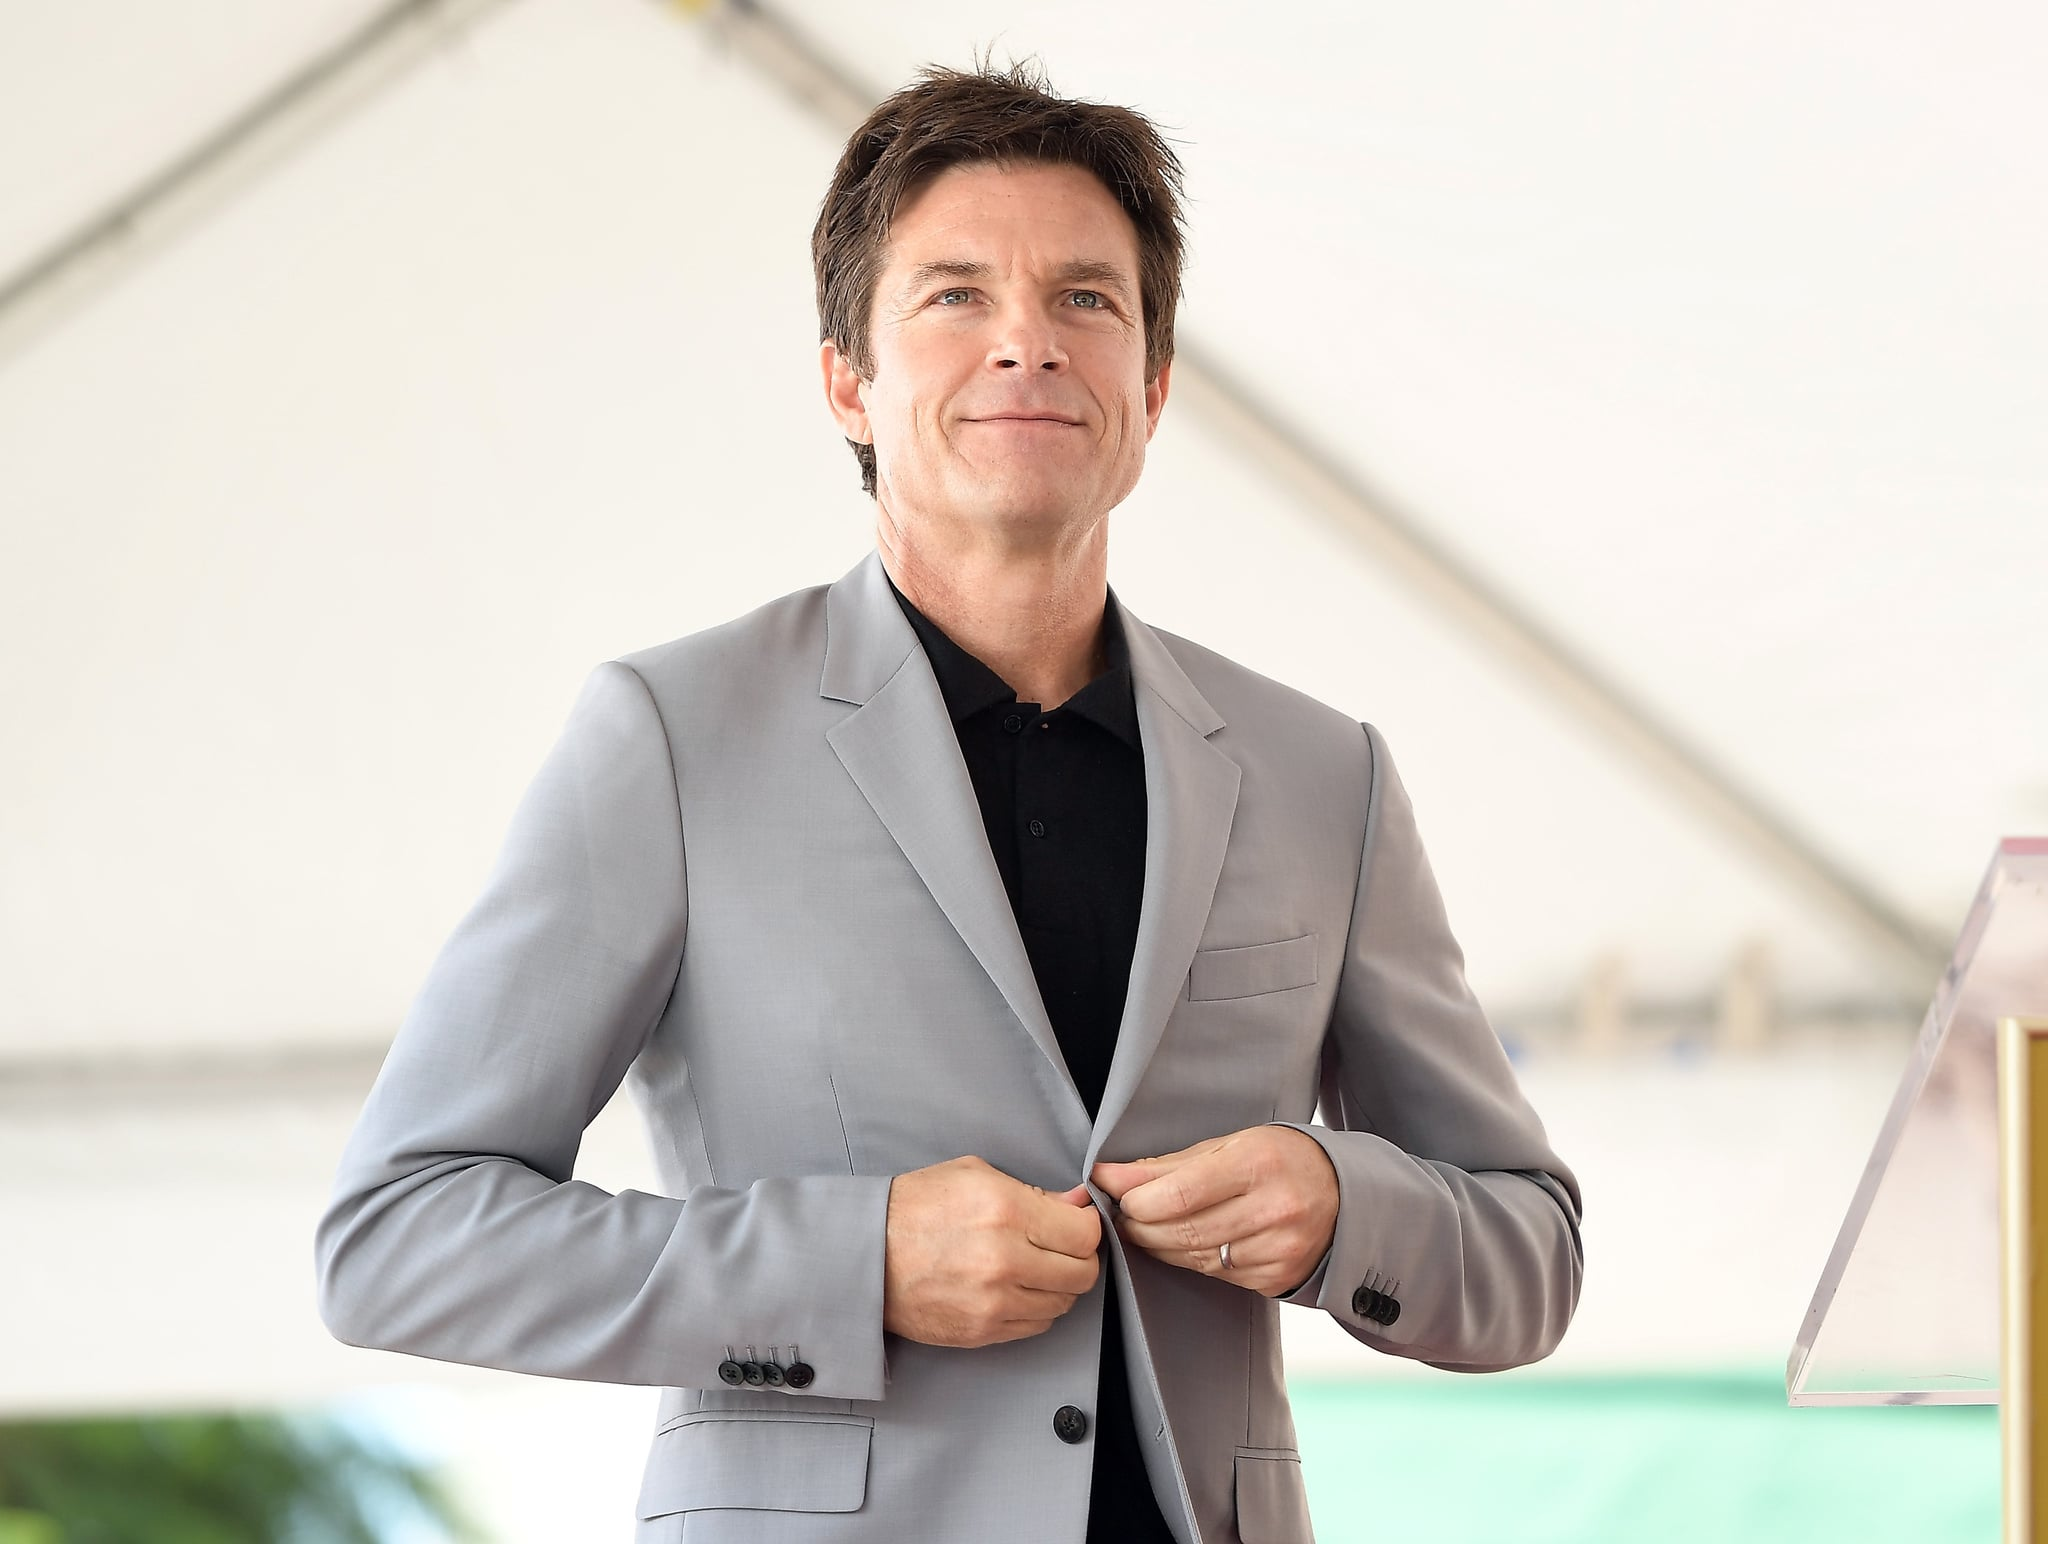 HOLLYWOOD, CA - JULY 26:  Jason Bateman attends The Hollywood Walk of Fame Star Ceremony honoring Jason Bateman on July 26, 2017 in Hollywood, California.  (Photo by Matt Winkelmeyer/Getty Images)